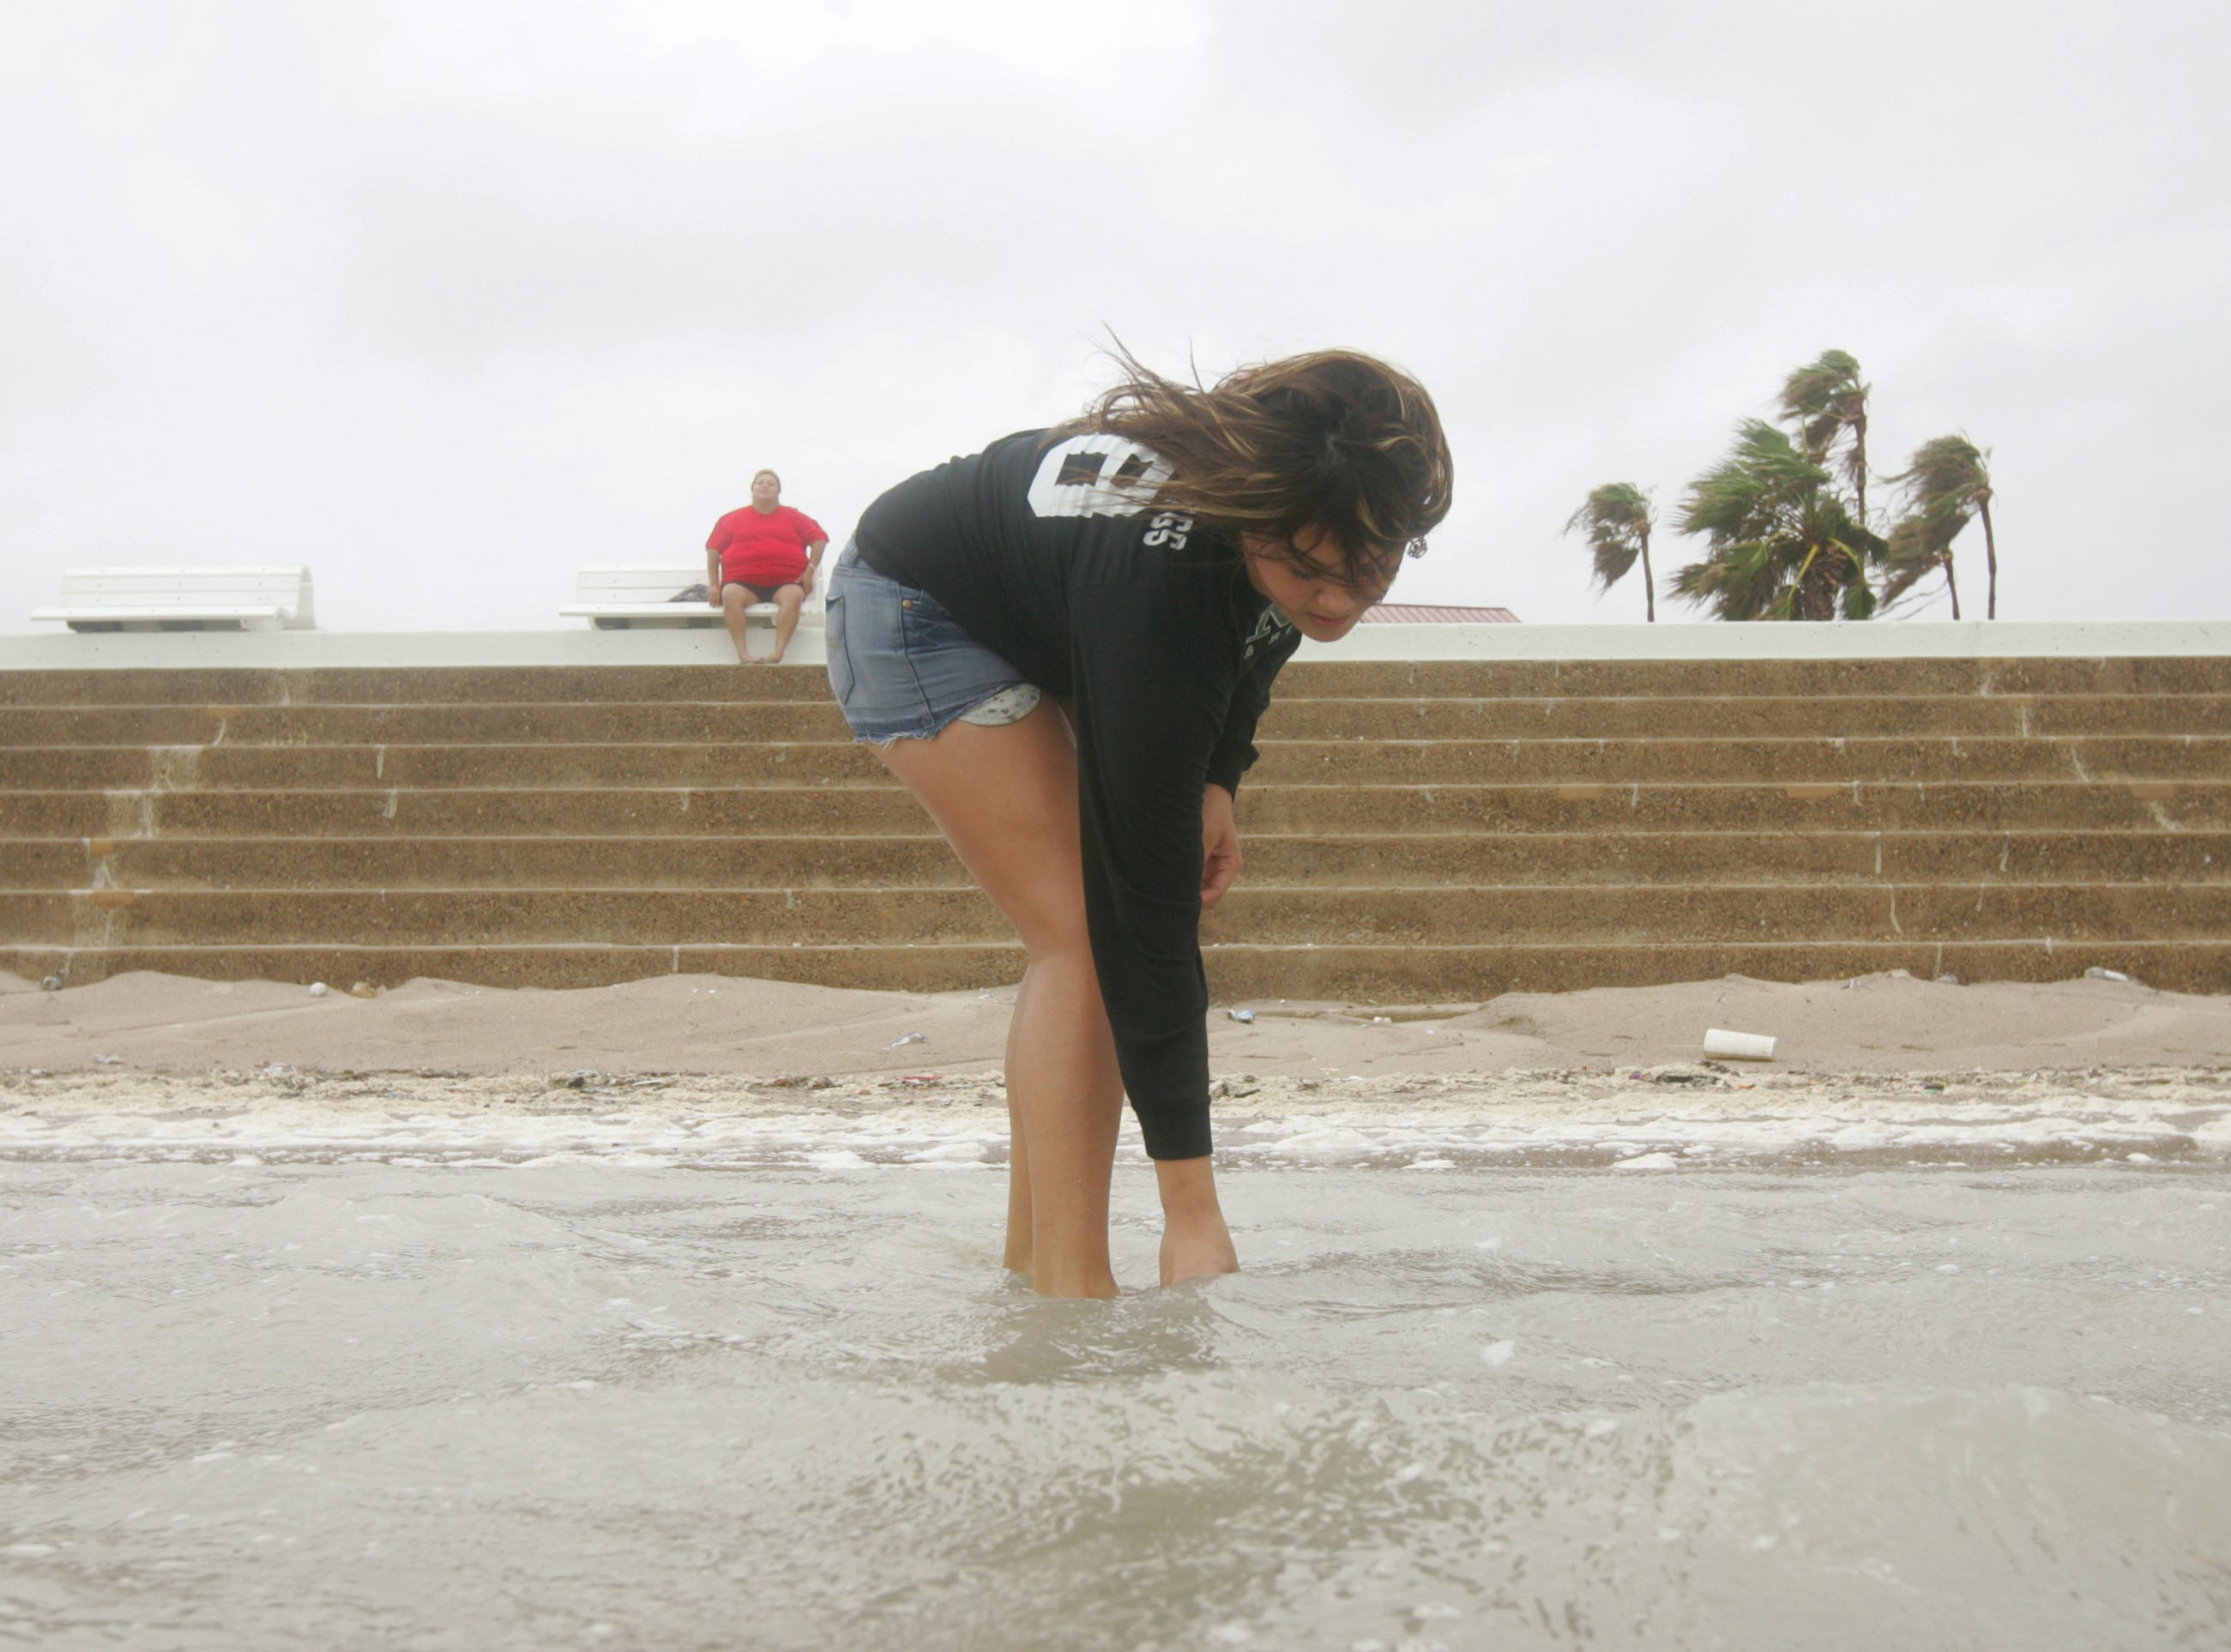 Tamie Rodela, 16 of Corpus Christi, picks up shells and rocks on McGee Beach Wednesday, July 23, 2008, flooded over from the high waters brought in by Hurricane Dolly in downtown Corpus Christi.